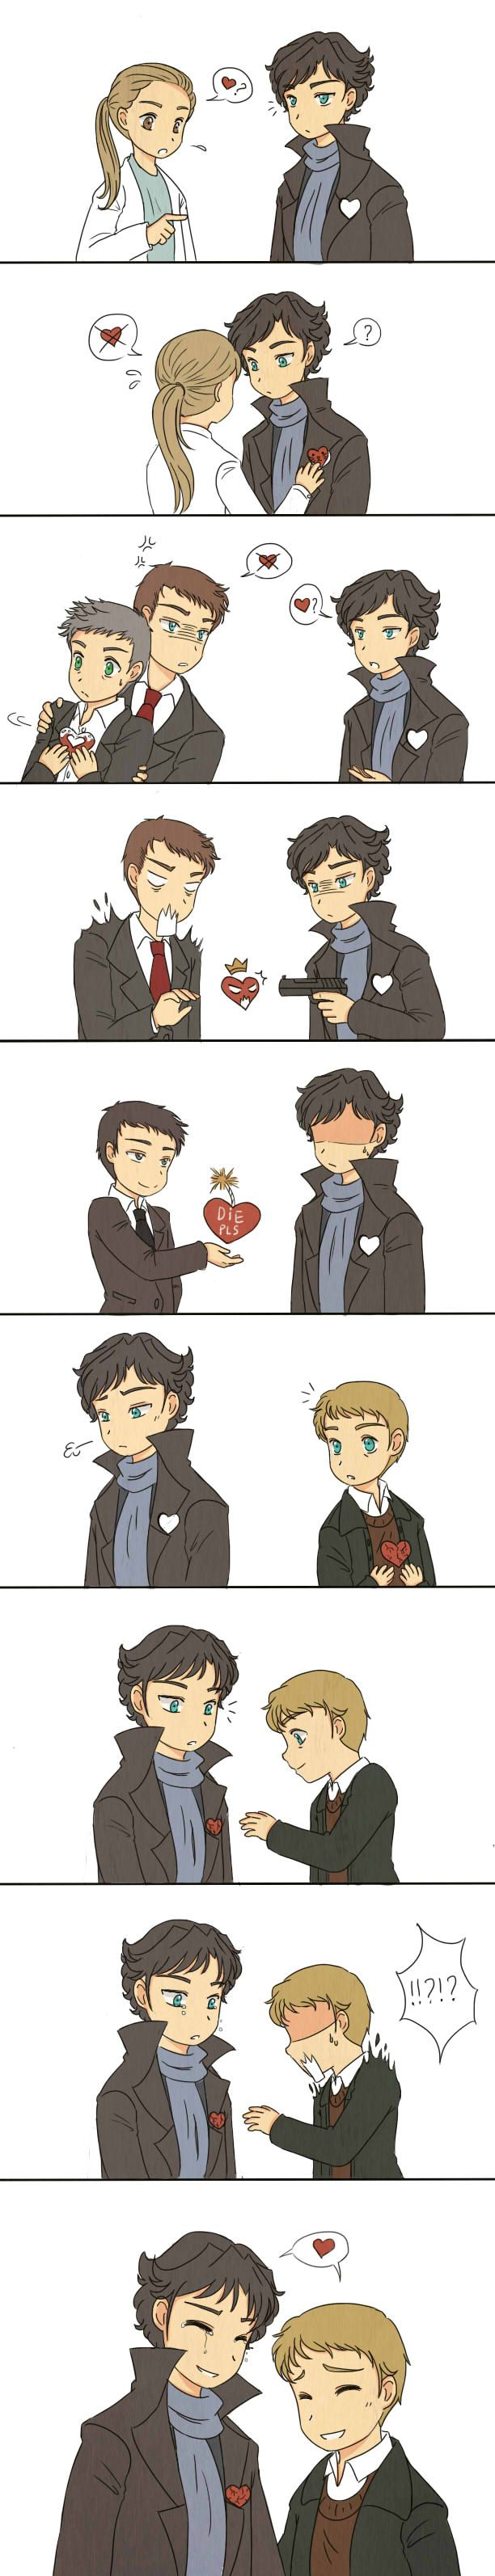 i know this was supposed to be johnlock or sth, but i started crying at the second cut where molly gives her heart to sherlock.......